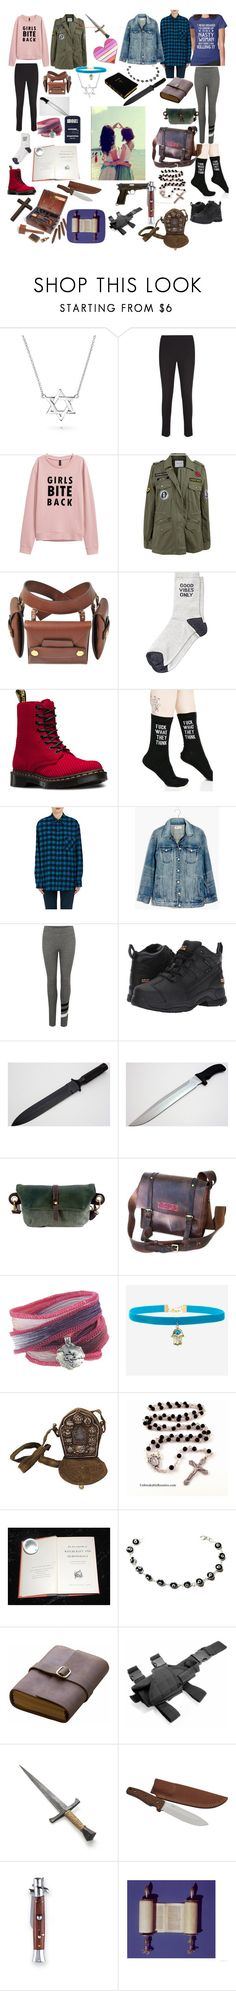 """Paranormal Hunter Girlfriends"" by ghostscientist ❤ liked on Polyvore featuring Bling Jewelry, Velvet by Graham & Spencer, STELLA McCARTNEY, Dr. Martens, Killstar, Adaptation, Madewell, Sundry, Ariat and NOVICA"